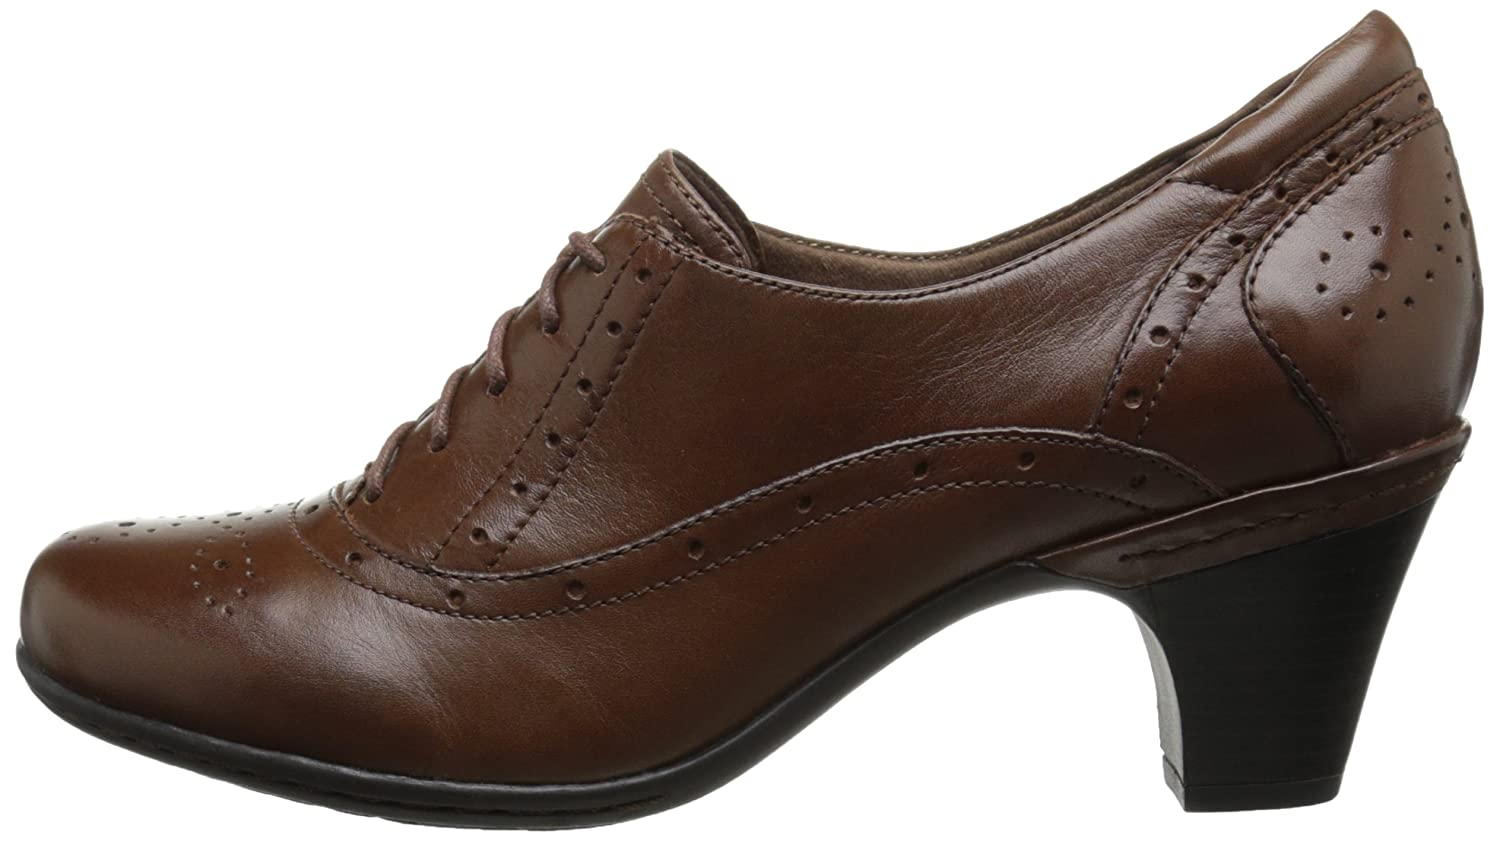 Cobb Hill Rockport Women's Shayla Dress Pump B00SK4A8JQ 11 N US|Brown